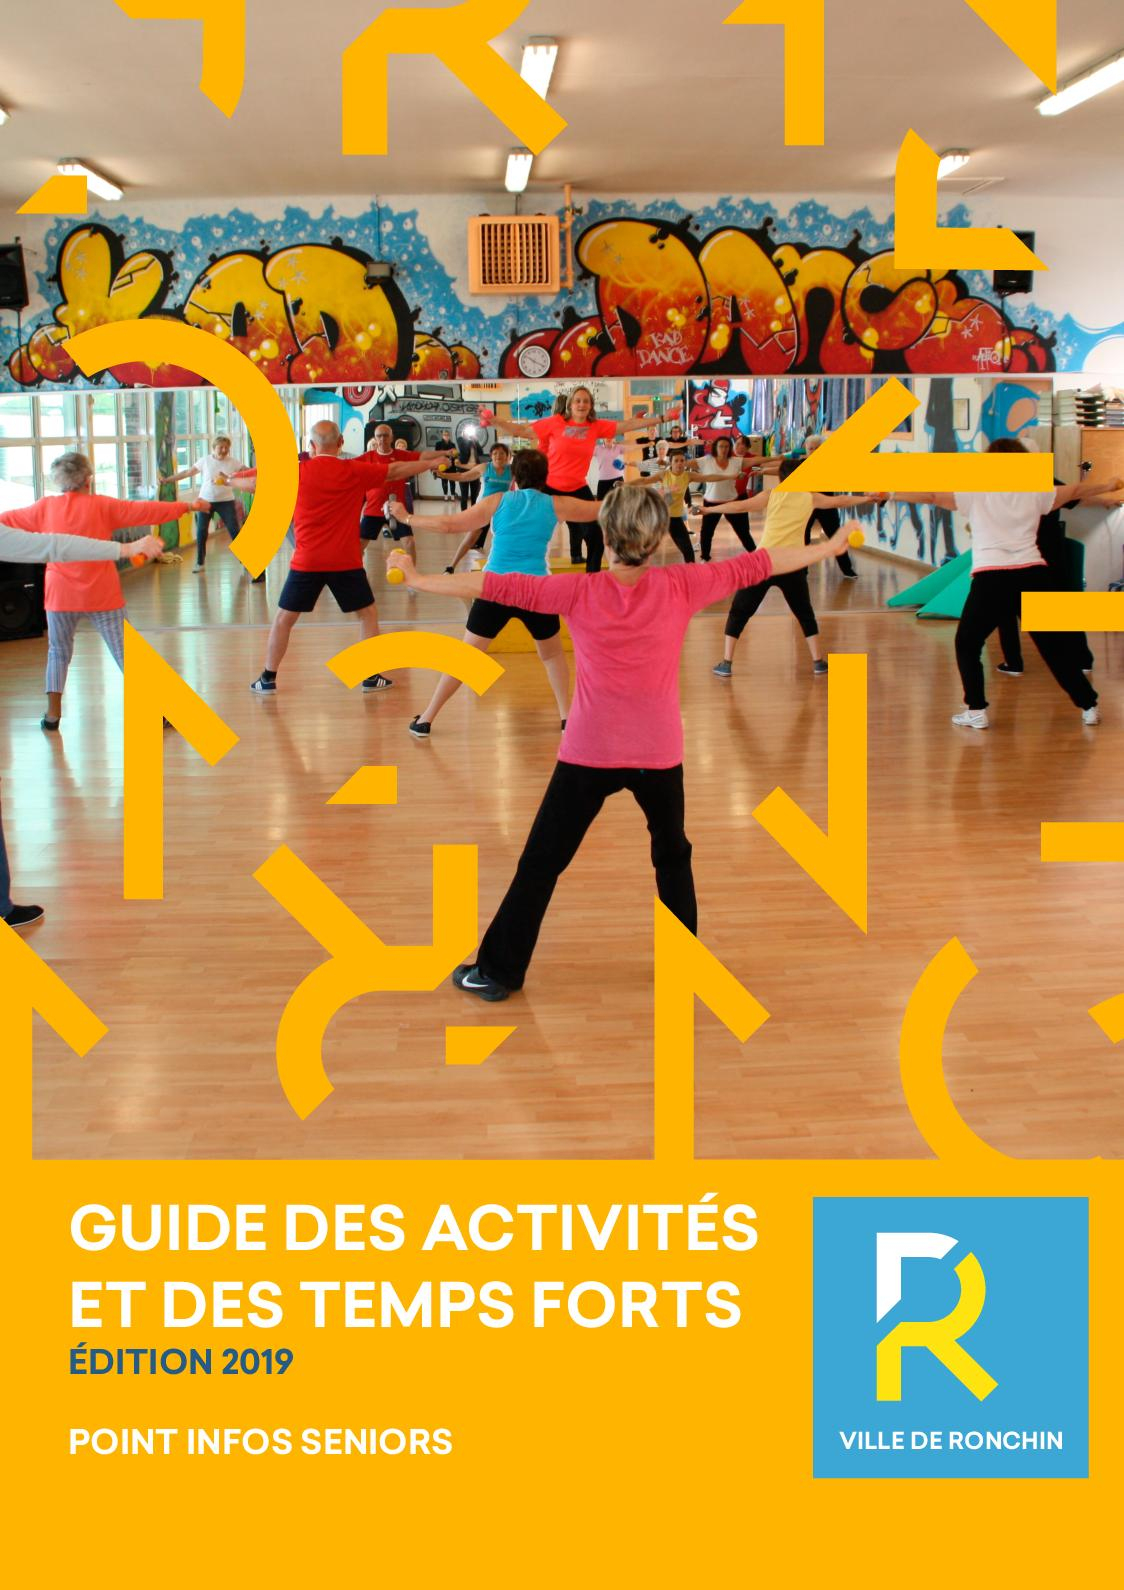 Calaméo - Guide Seniors - Ronchin 2018 tout Horaire Piscine Ronchin